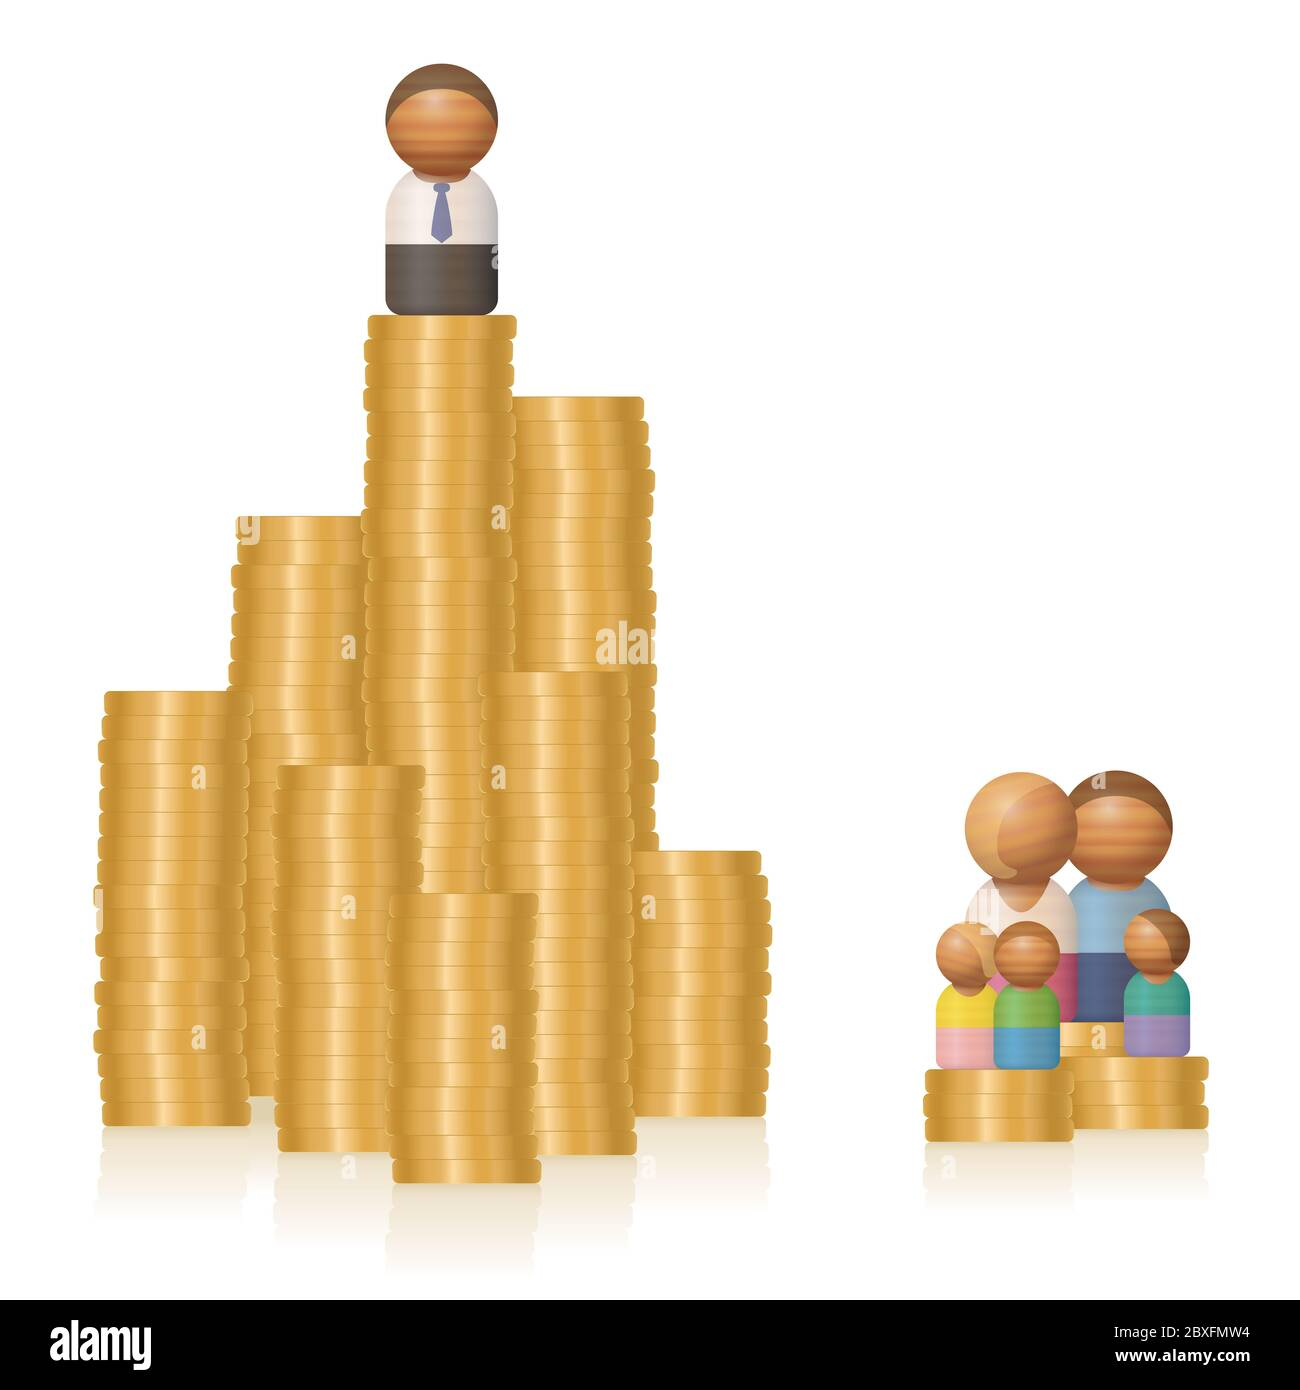 Rich man and poor family. Wealth of a single person on a big pile of money versus poverty of a family with money problems. Stock Photo